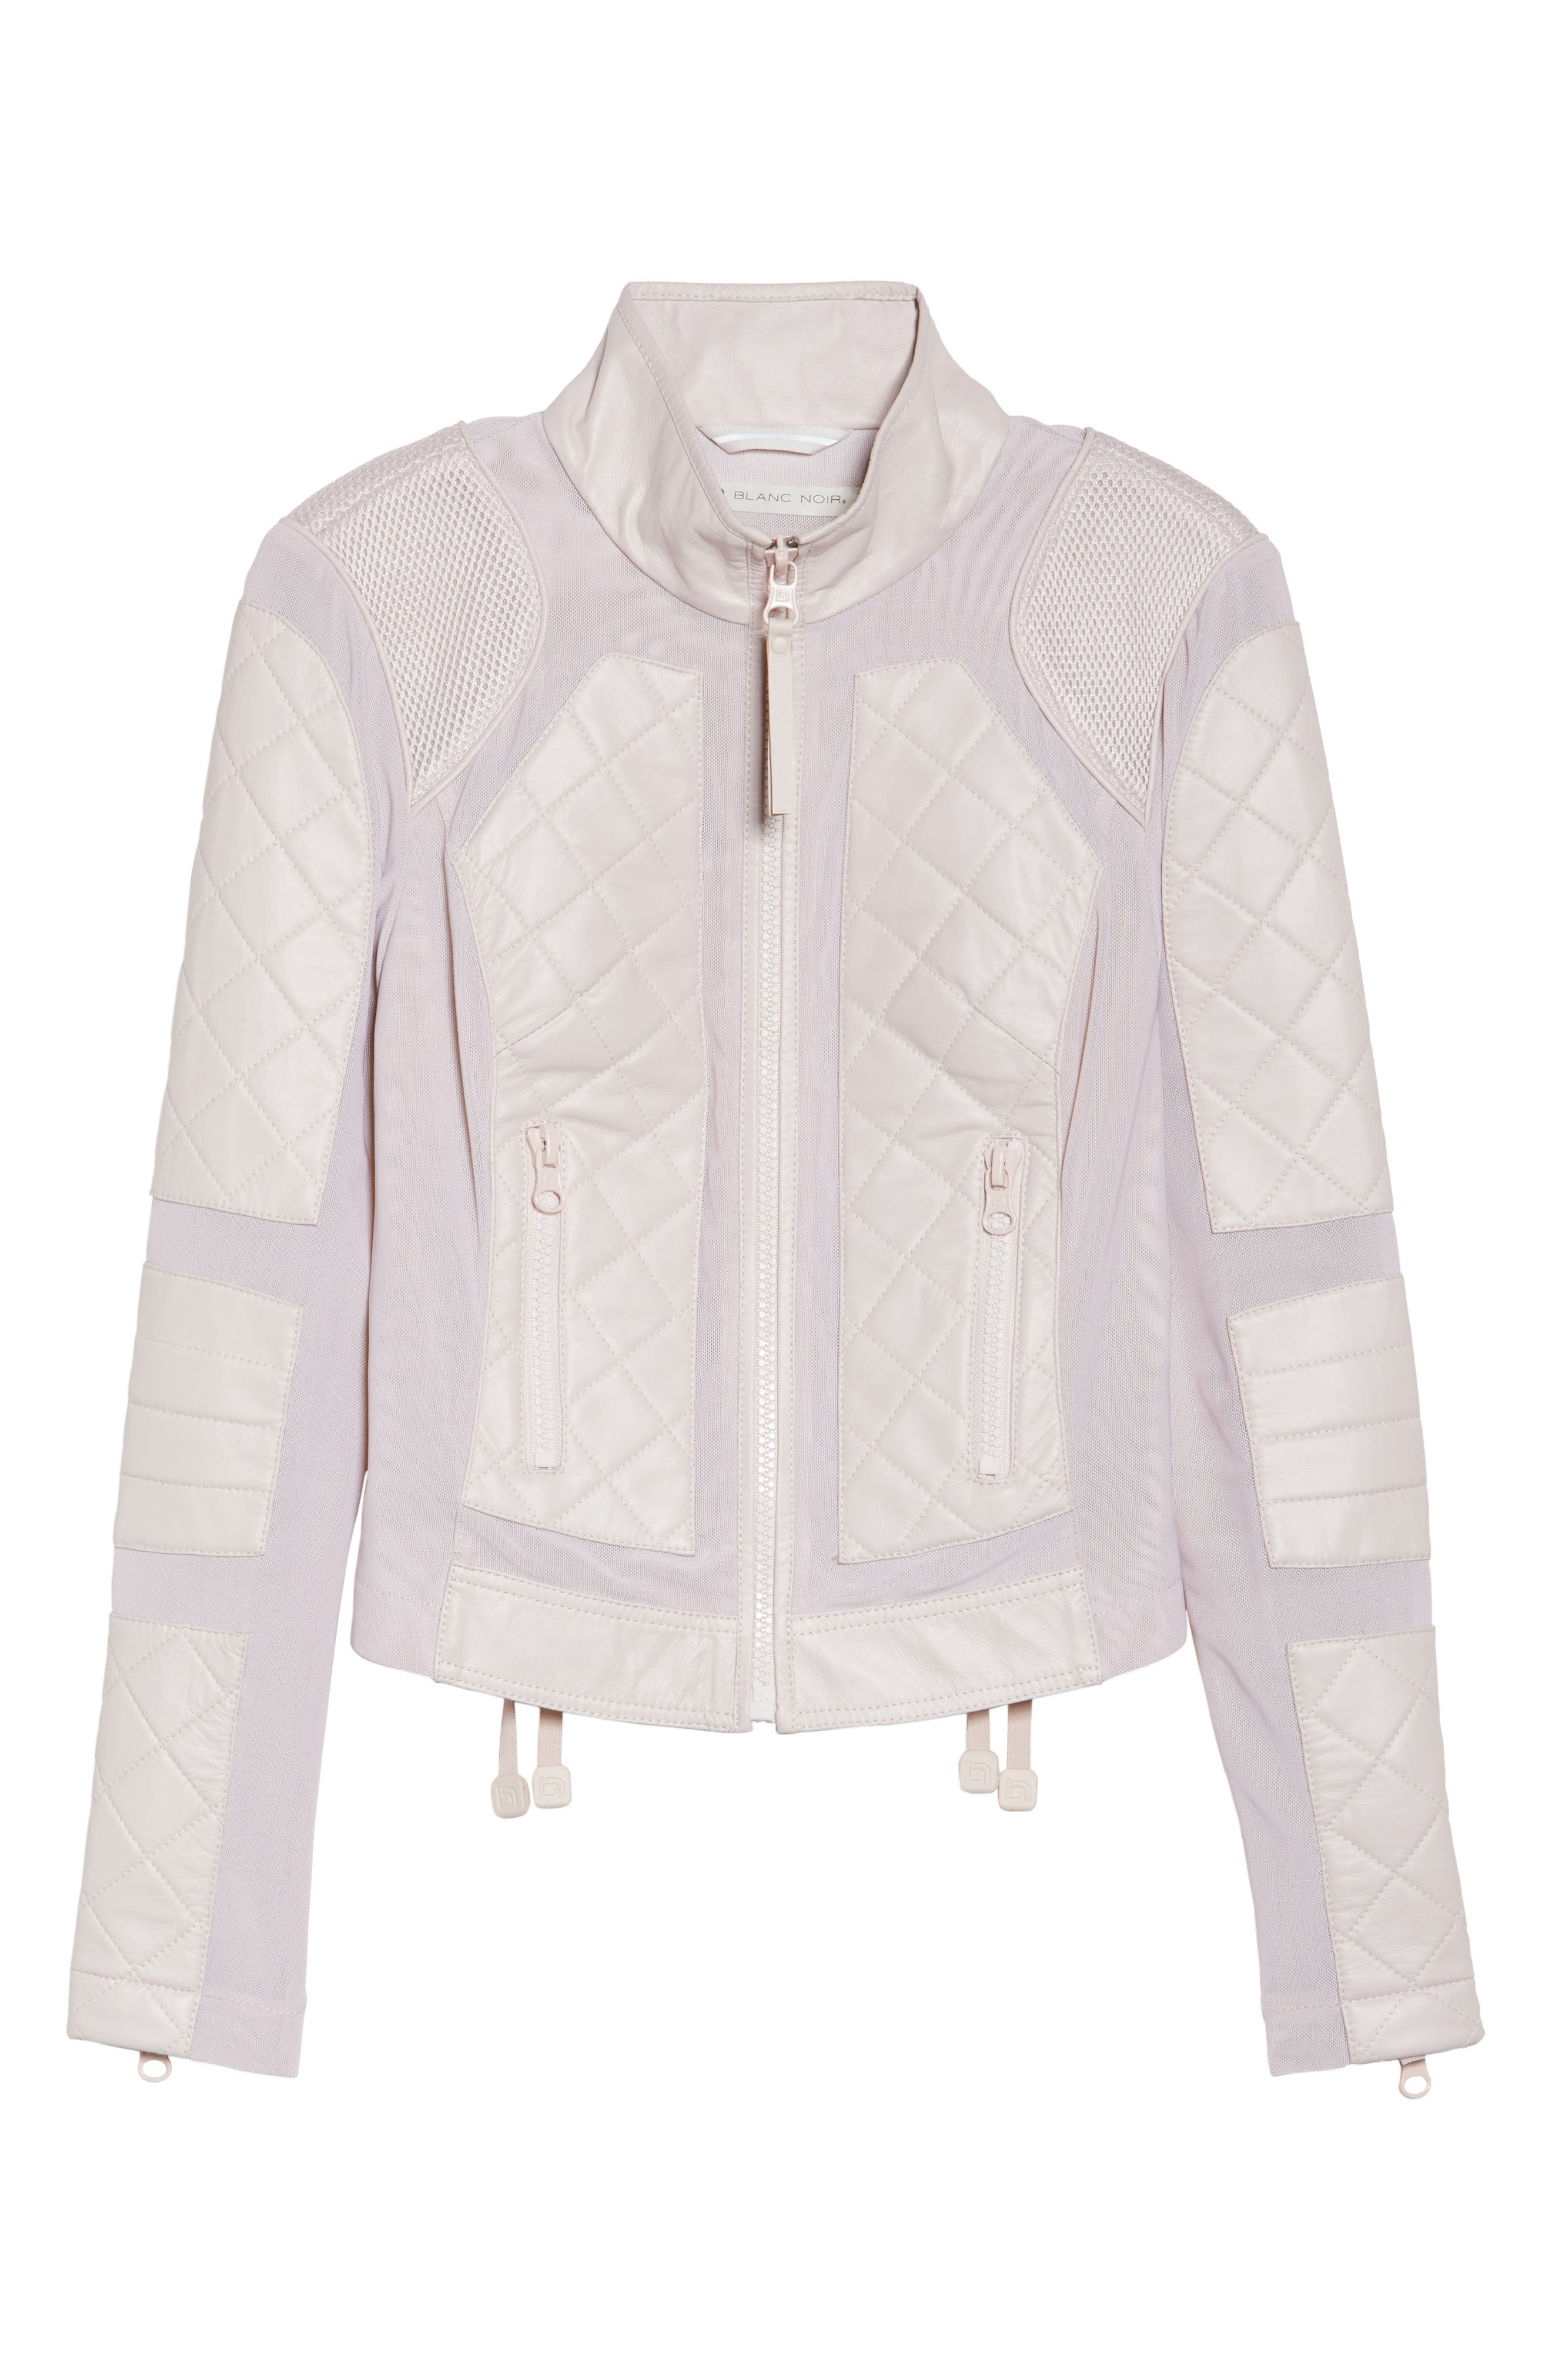 Leather & Mesh Moto Jacket,                             Alternate thumbnail 7, color,                             Pink